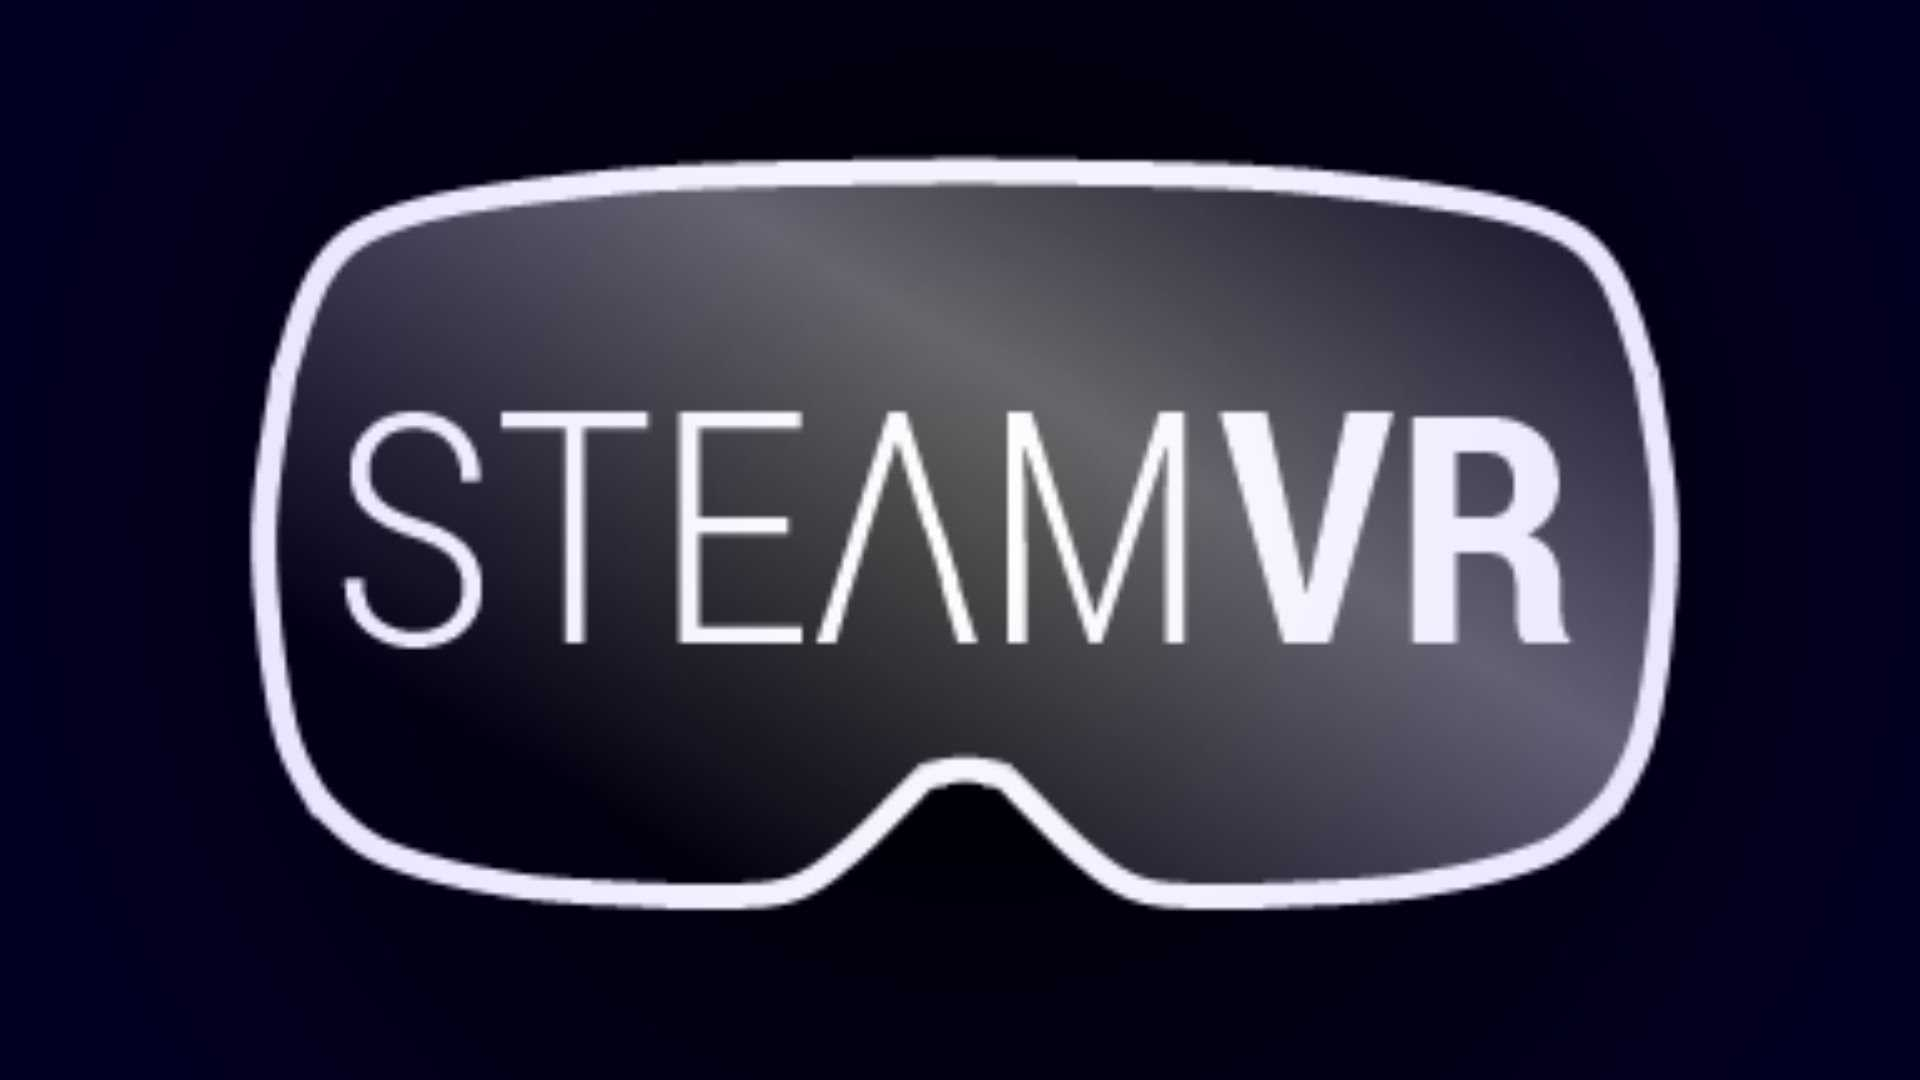 SteamVR updated to the 0.6.0.1 version